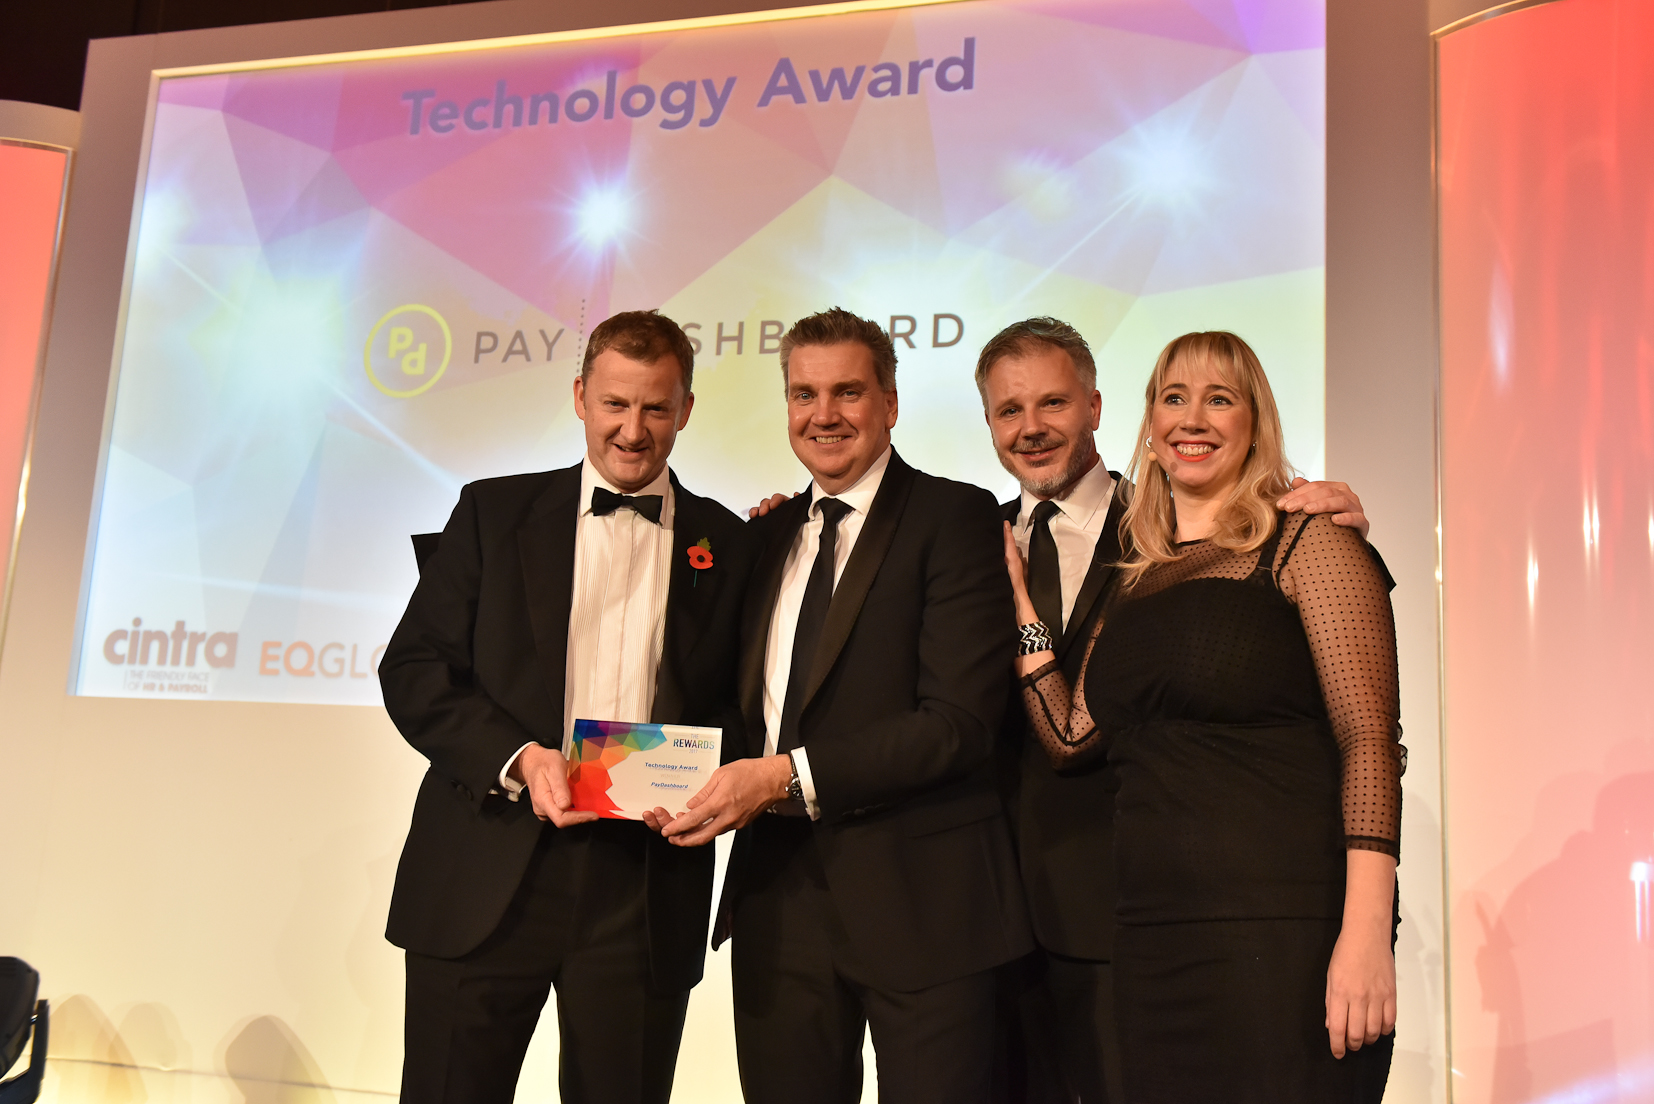 Winners 2017 - 17 Technology Award